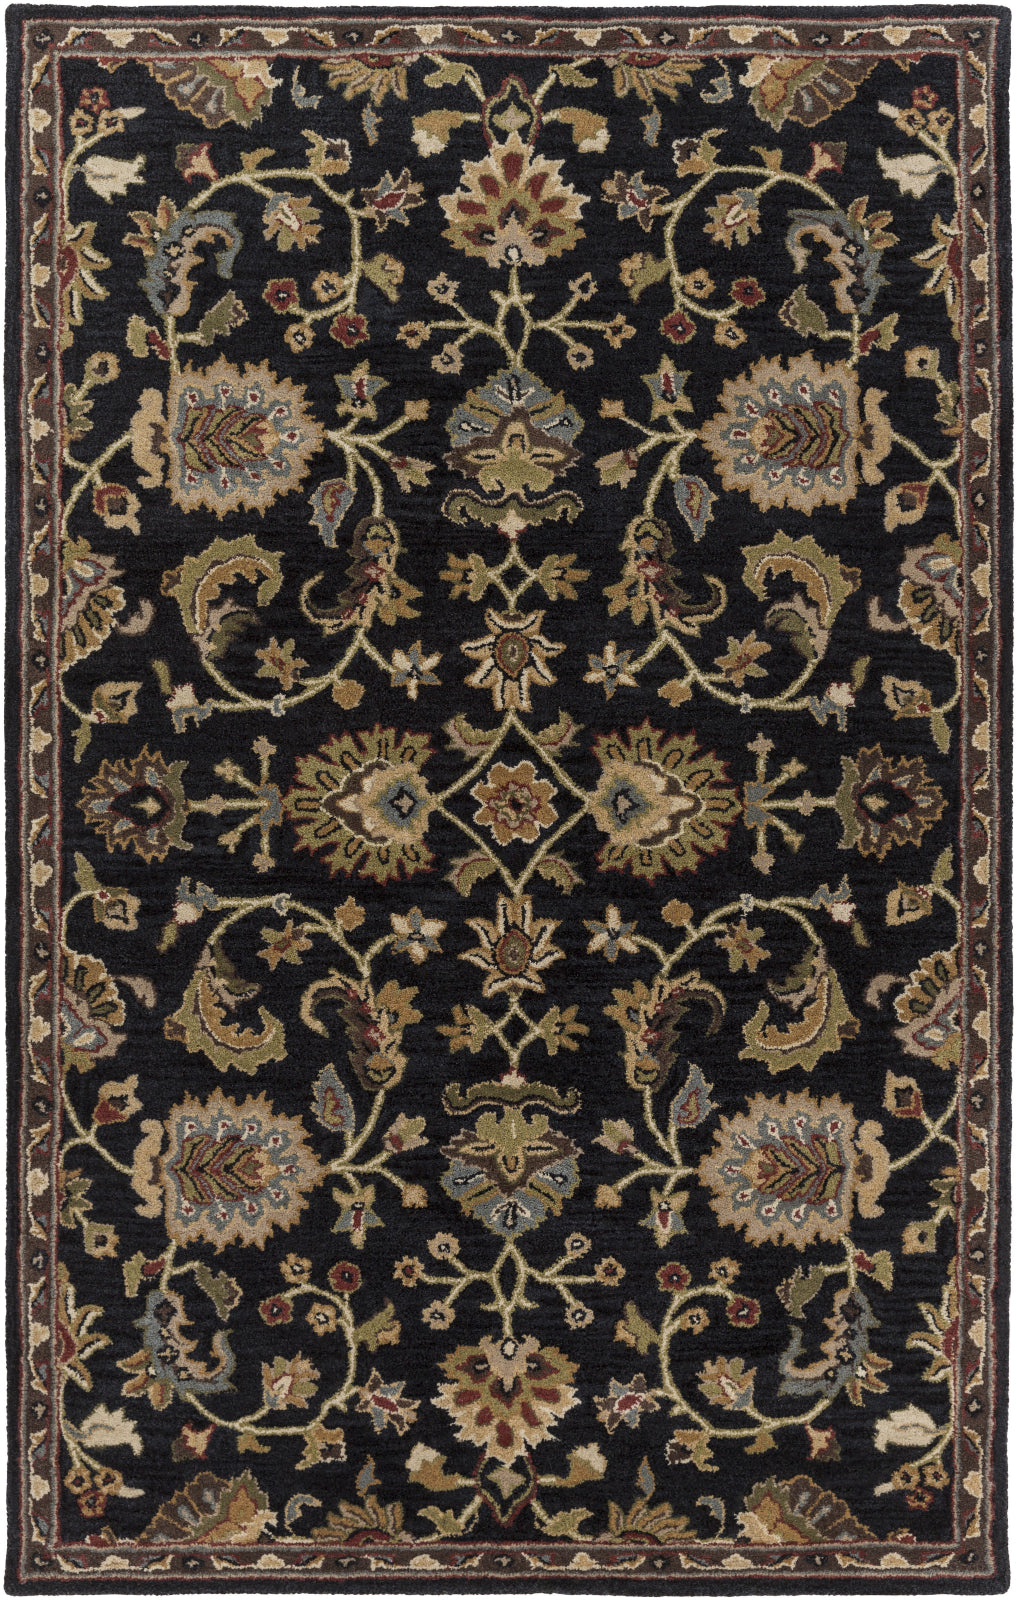 Artistic Weavers Middleton Mallie AWMD1000 Area Rug main image